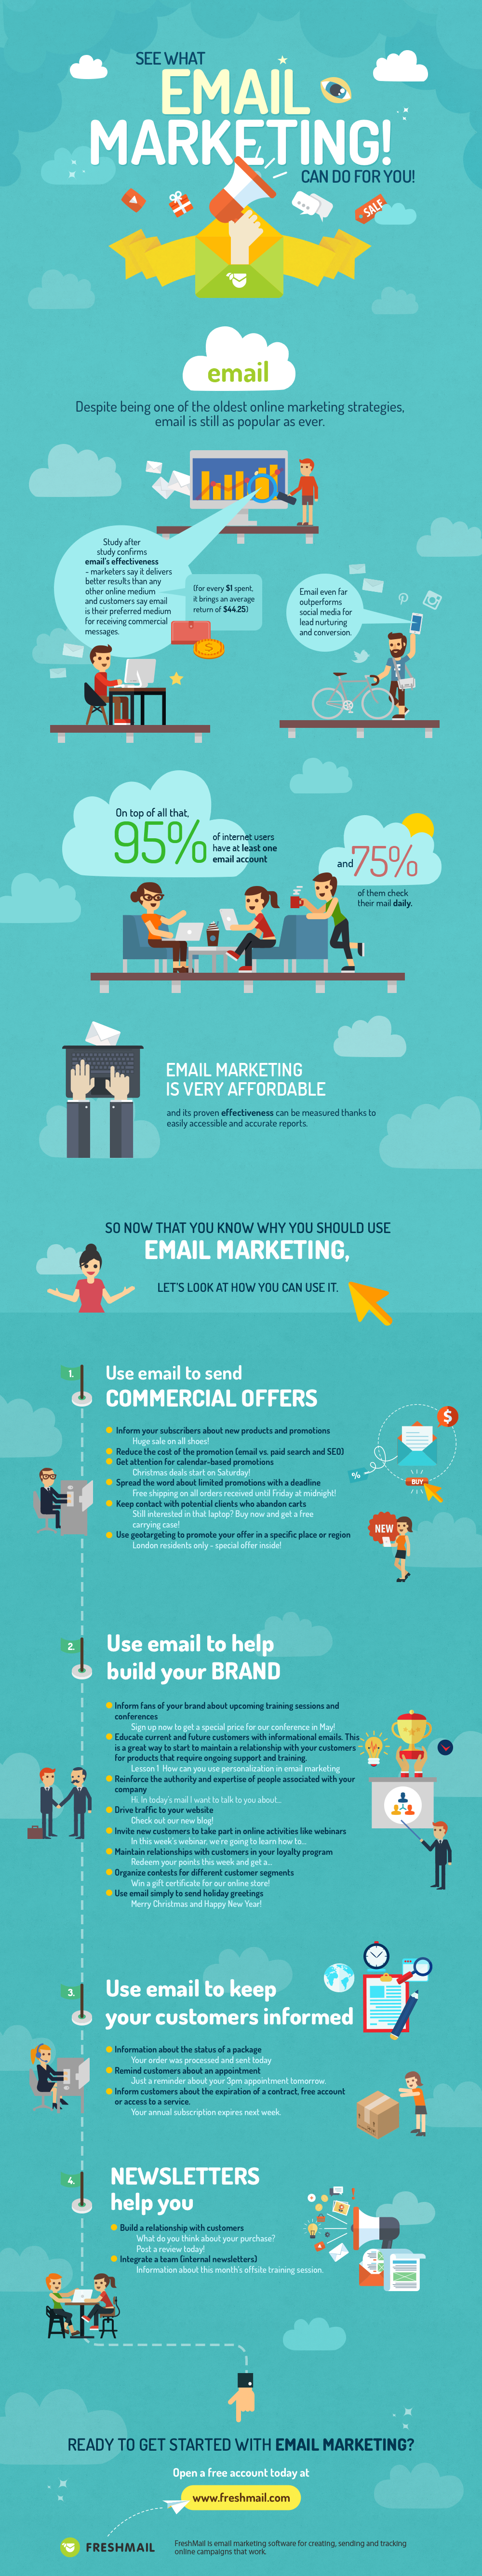 See What Email Marketing Can Do For You by FreshMail